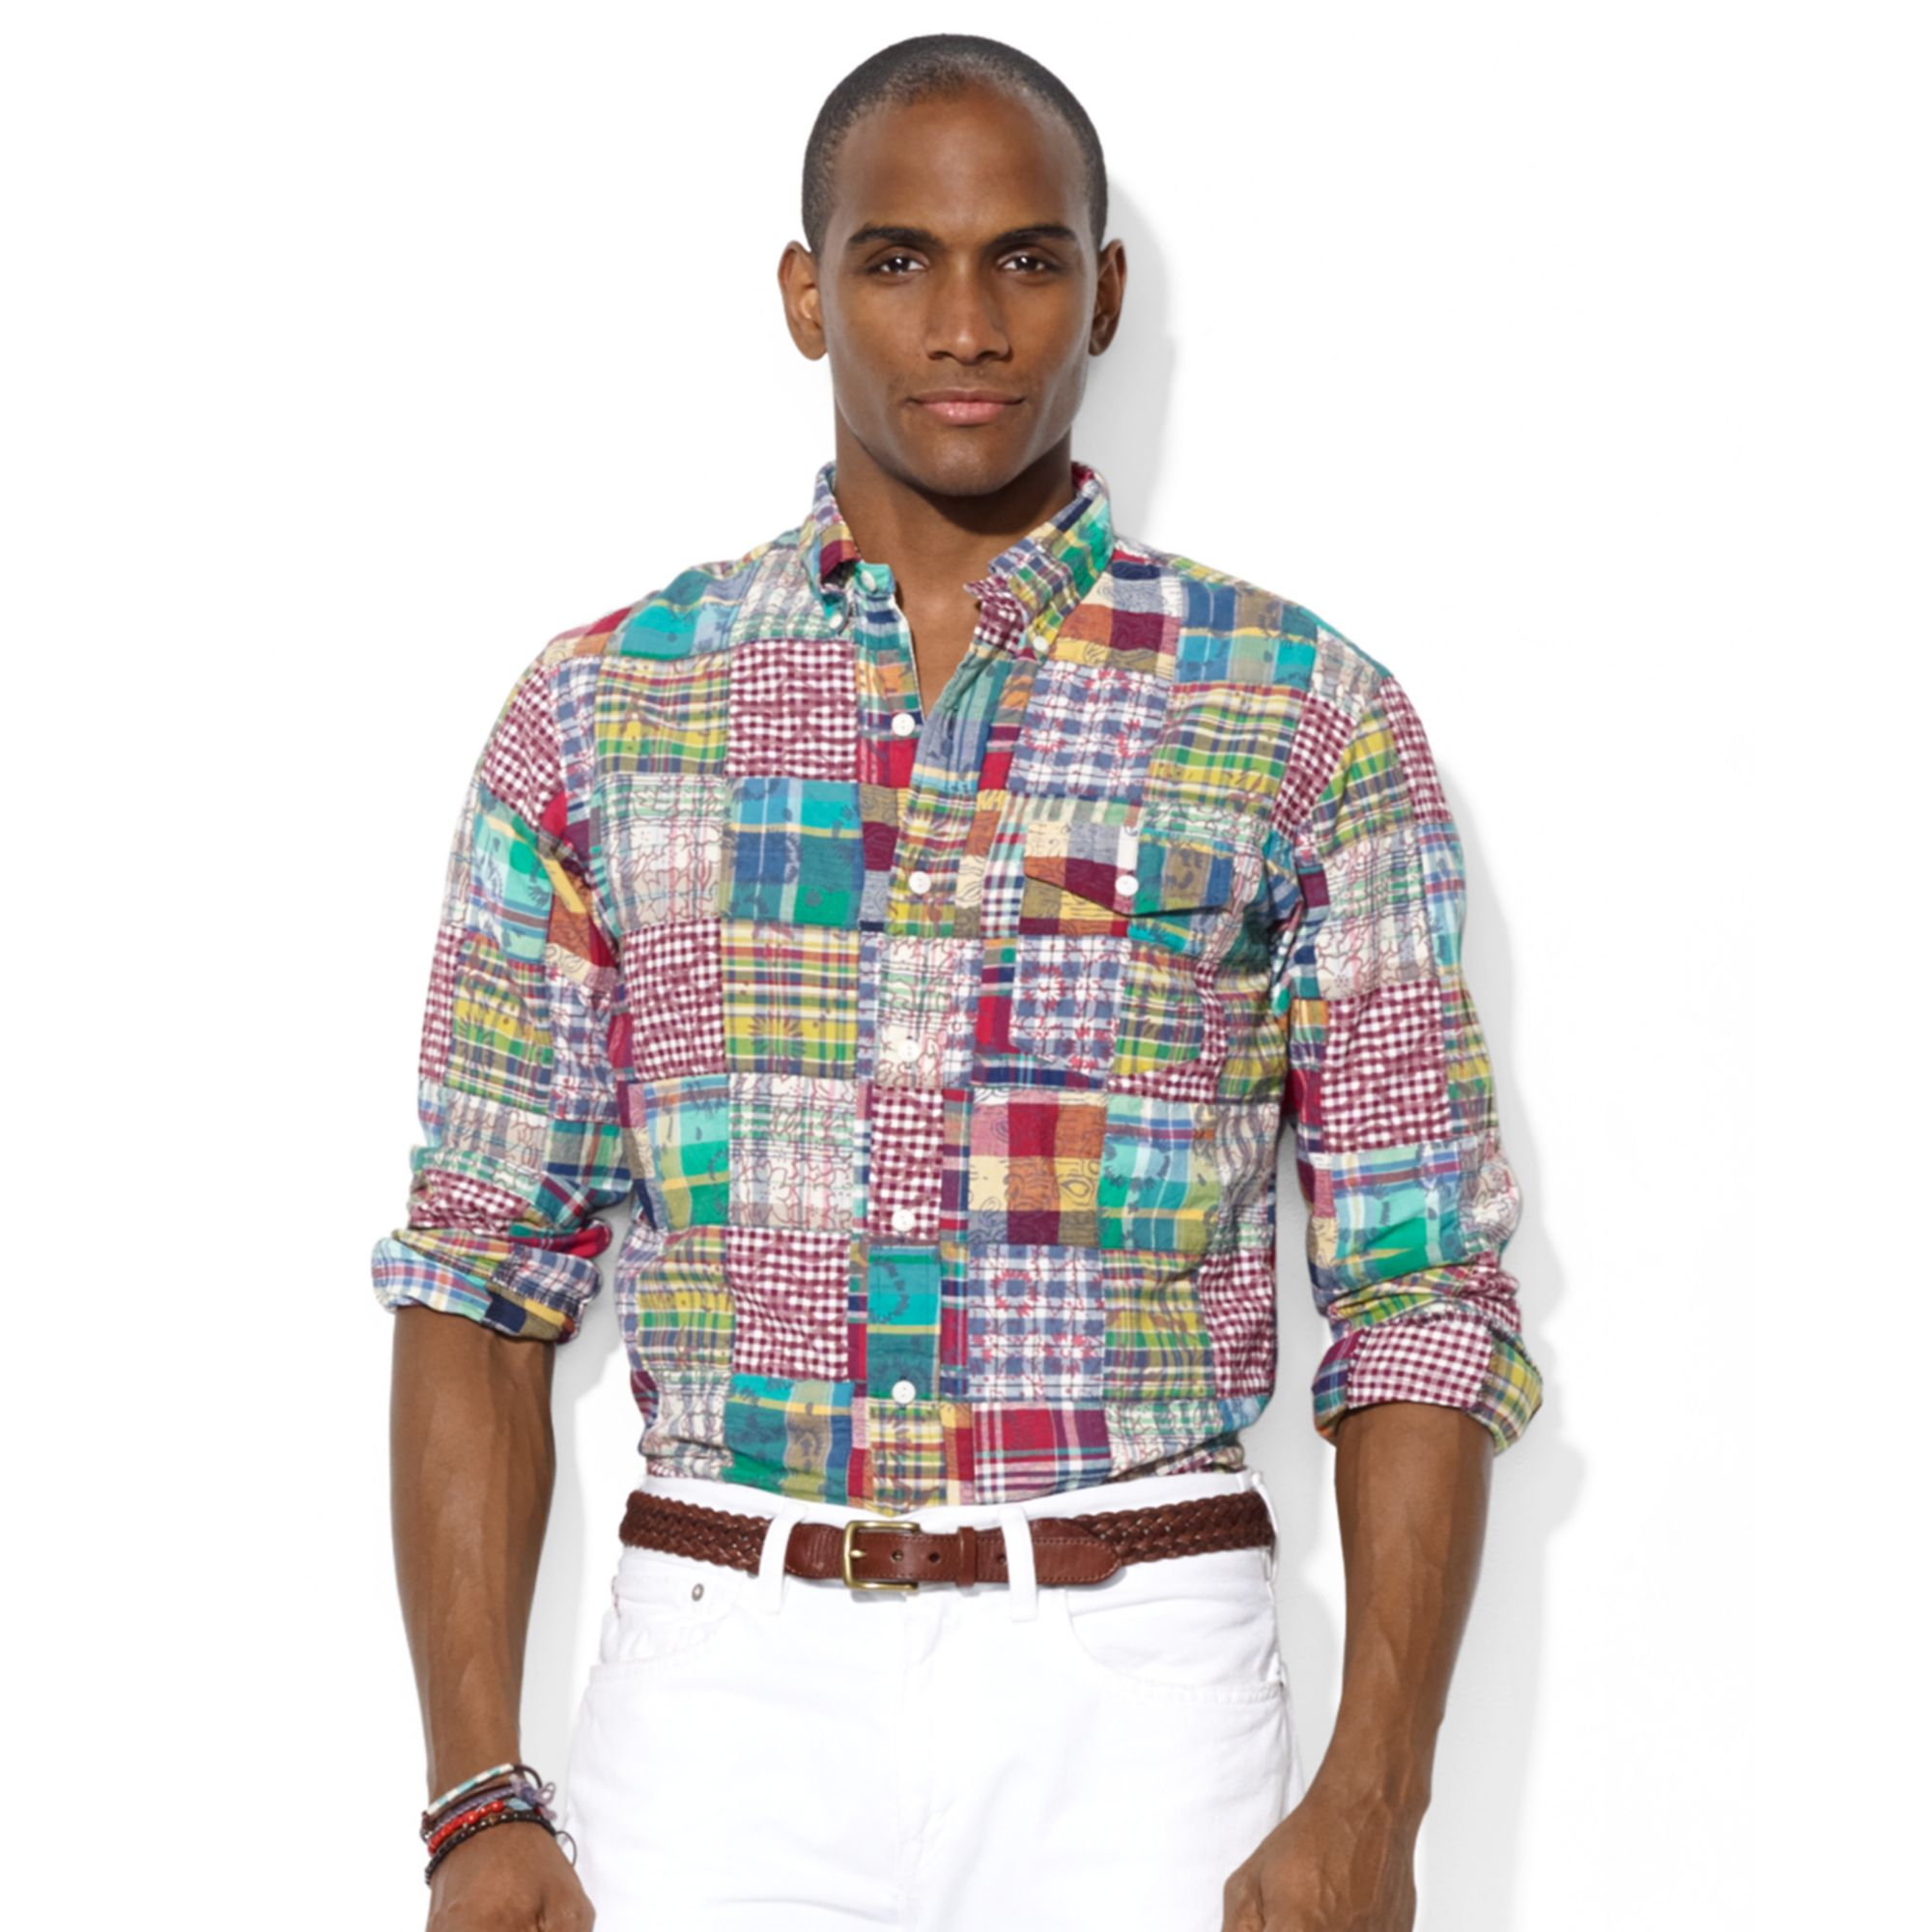 Shop panaccessories.gq for the Highest Quality Women's and Men's Clothing and see the entire selection of Children's Clothing, Cashmere Sweaters, Women's Dresses and Shoes, Men's Suits, Jackets, Accessories and more.